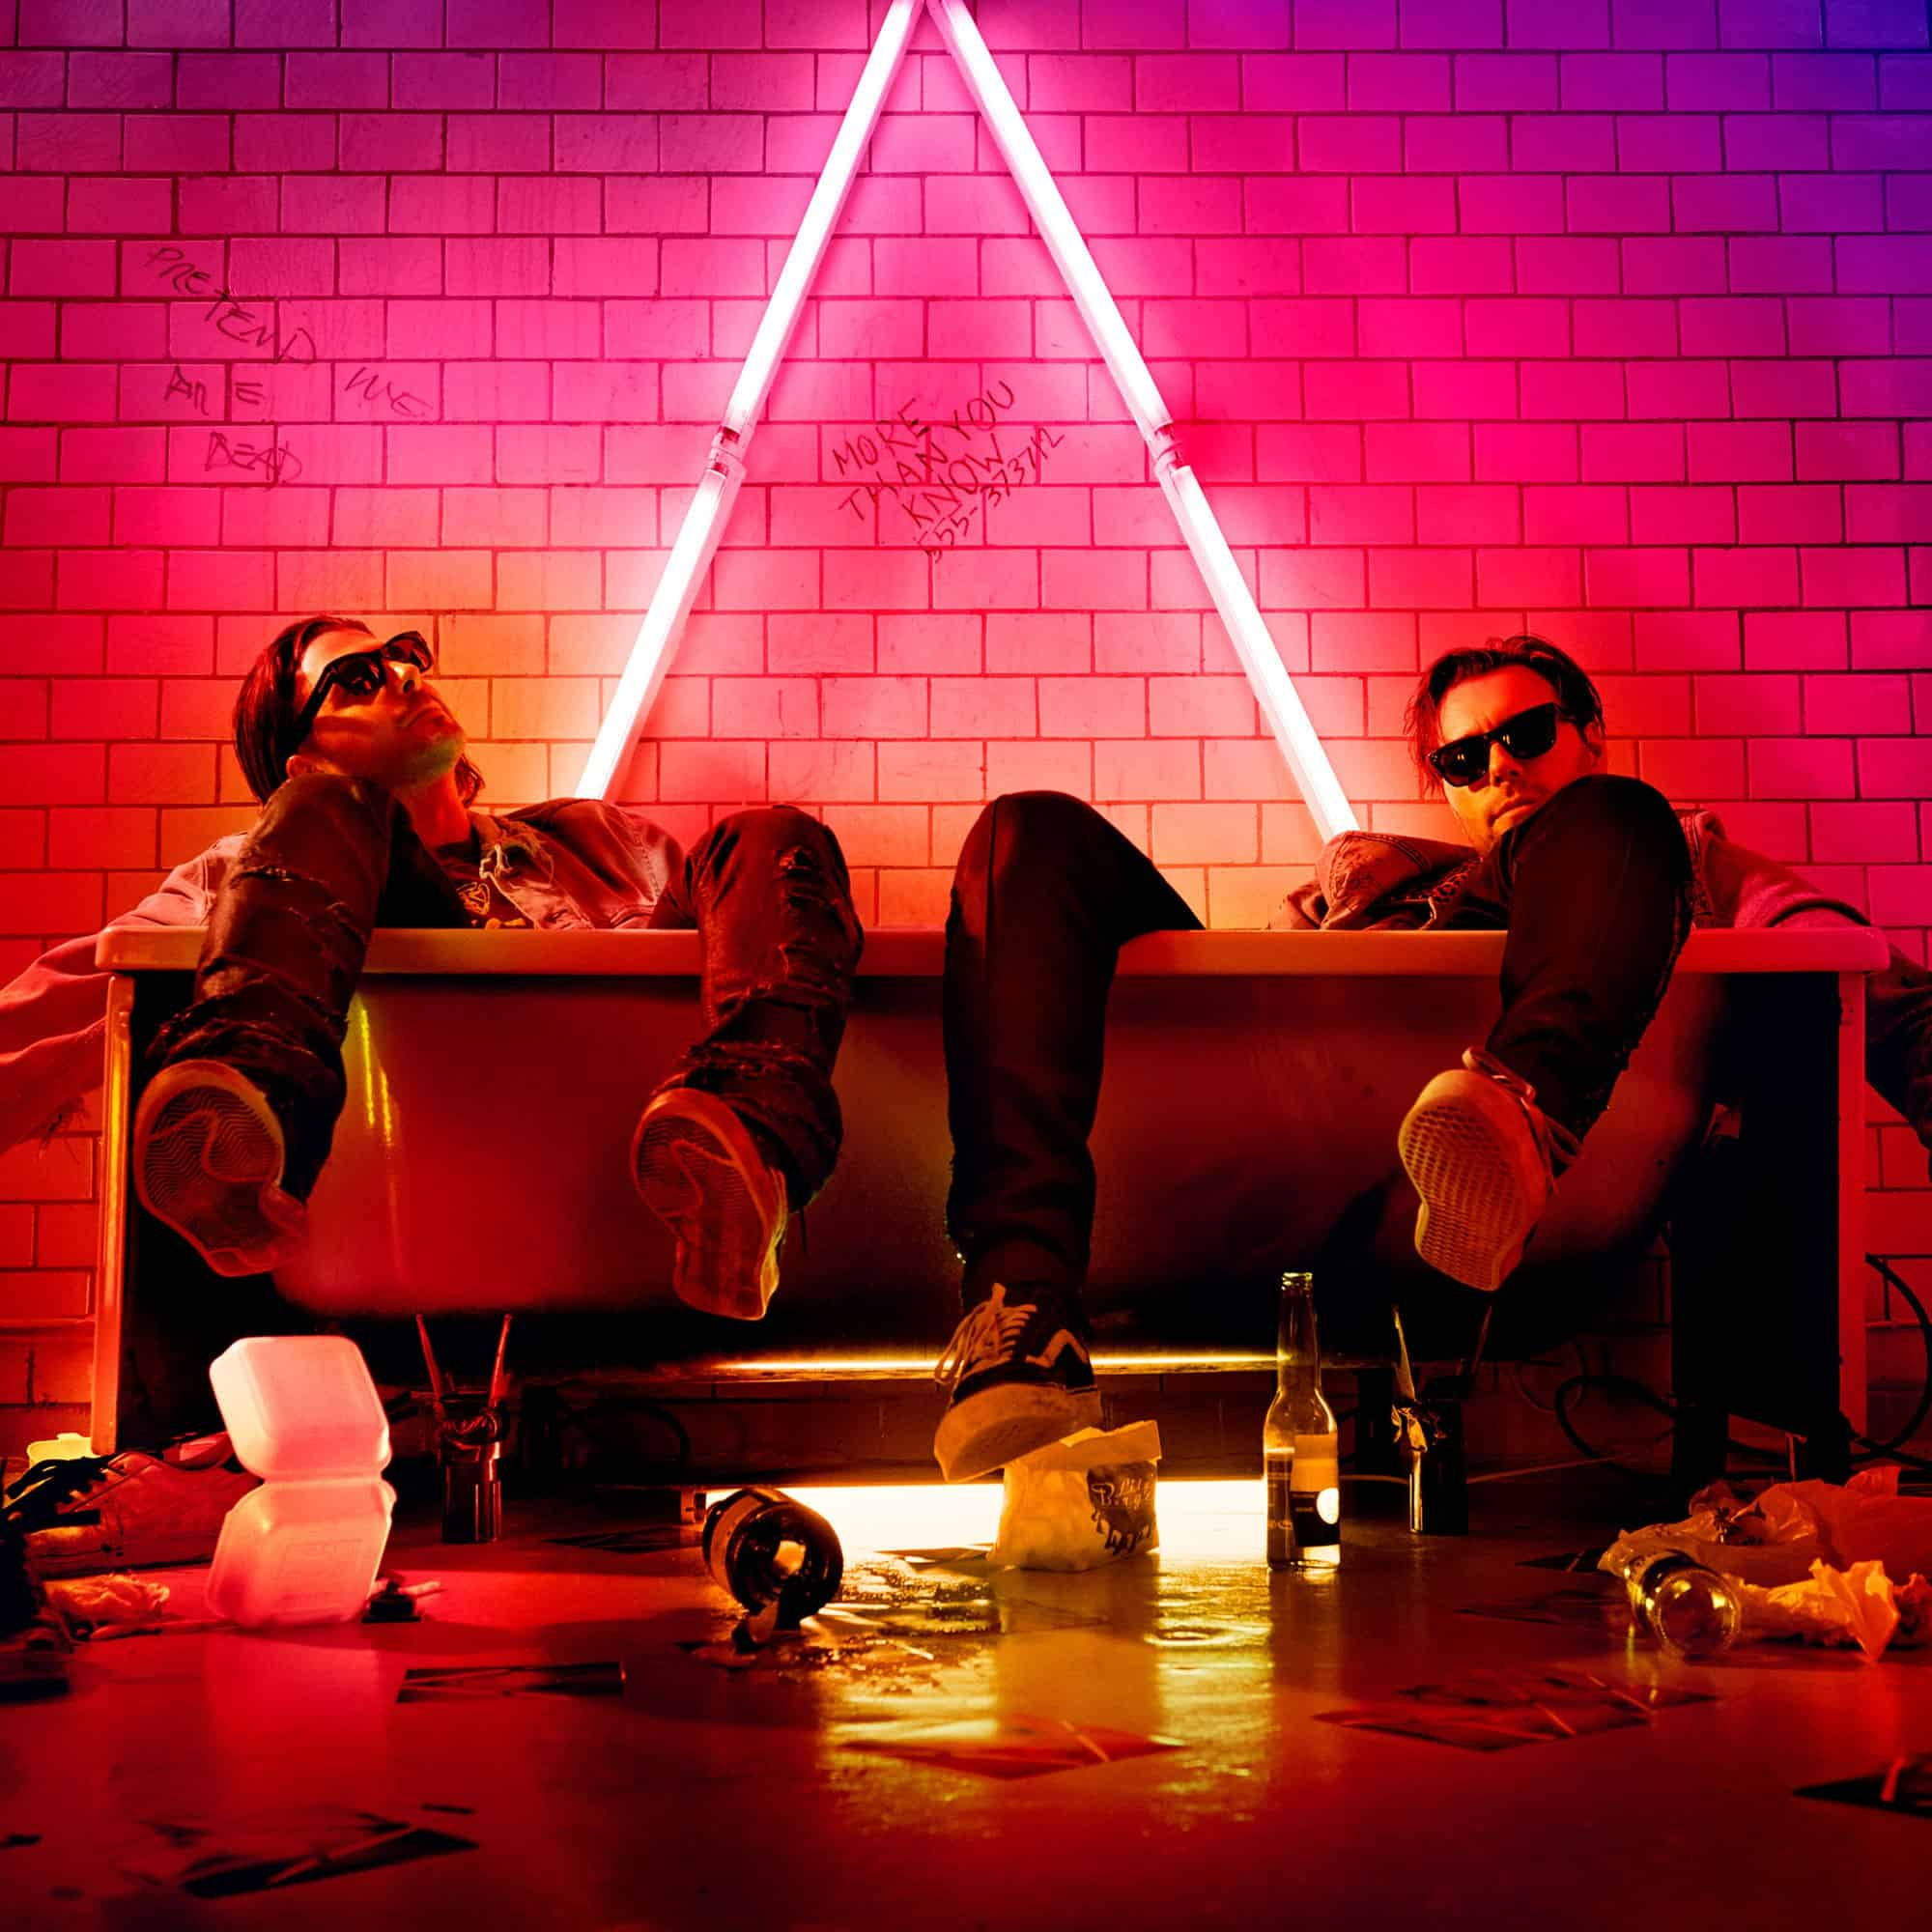 Axwell Λ Ingrosso – More Than You Know EP [Virgin EMI]